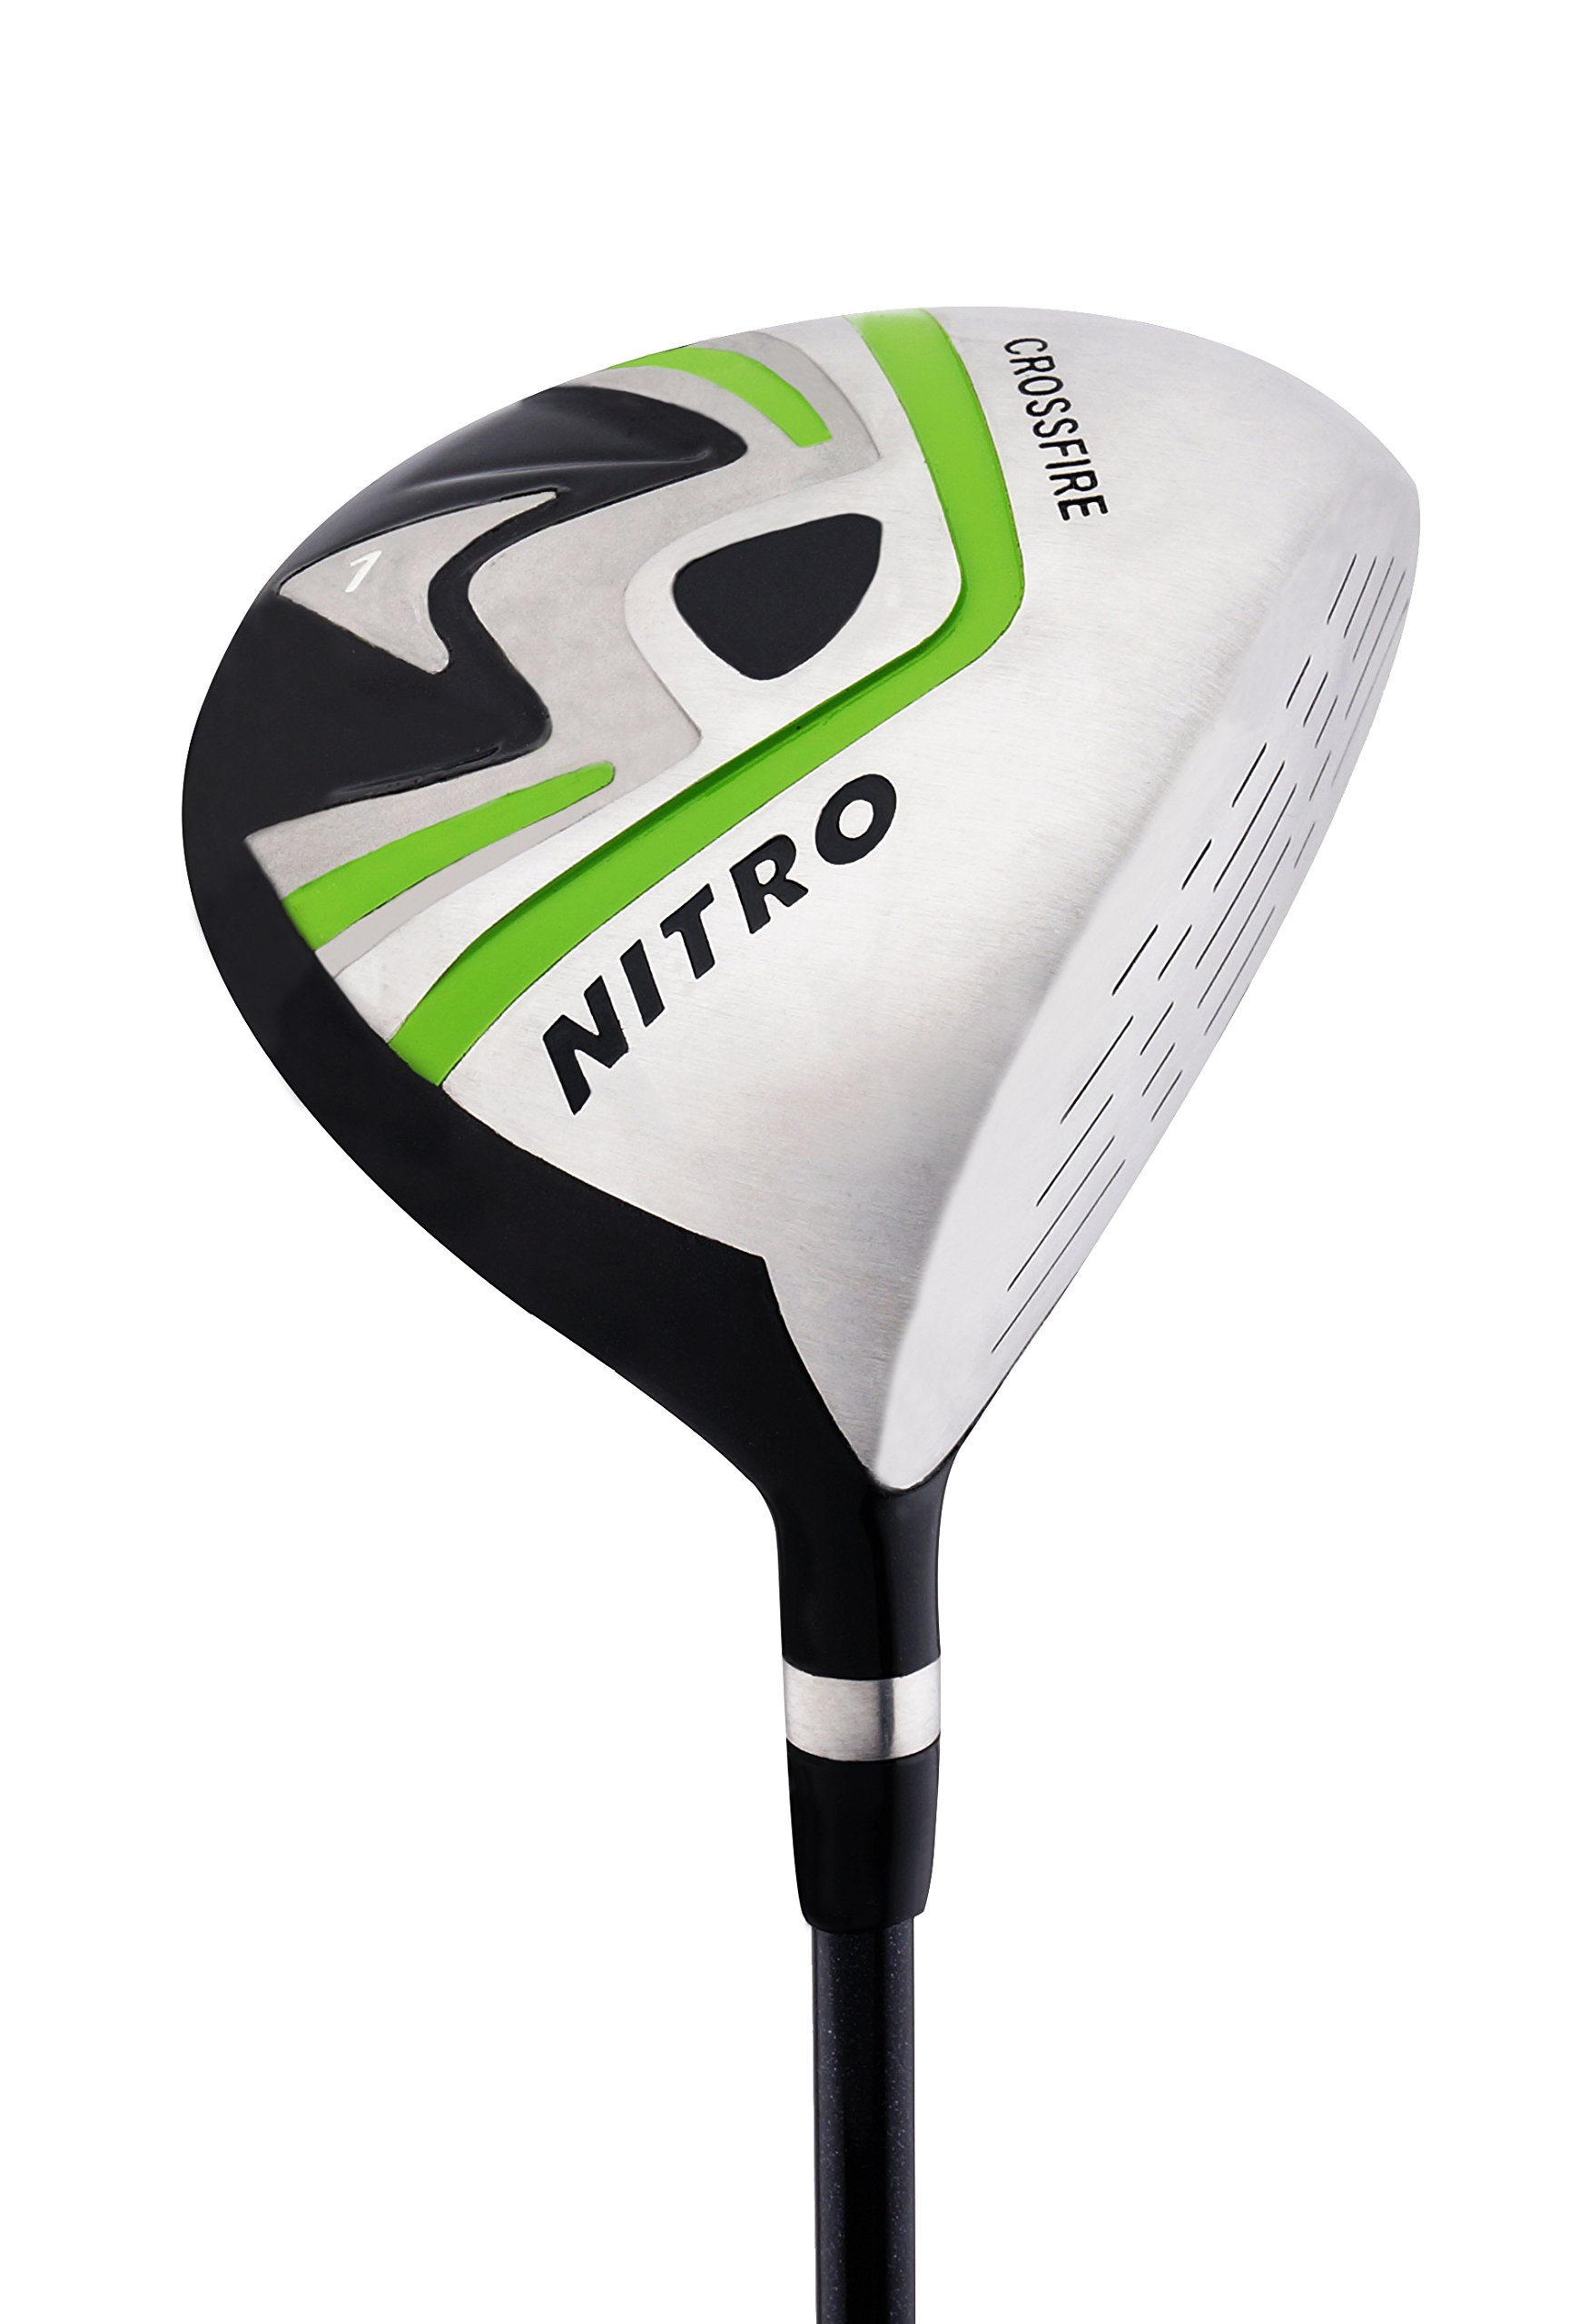 Nitro Crossfire Kid's Golf Club Complete 8 Piece Set, Right Hand, Ages 5-8 by Nitro (Image #2)